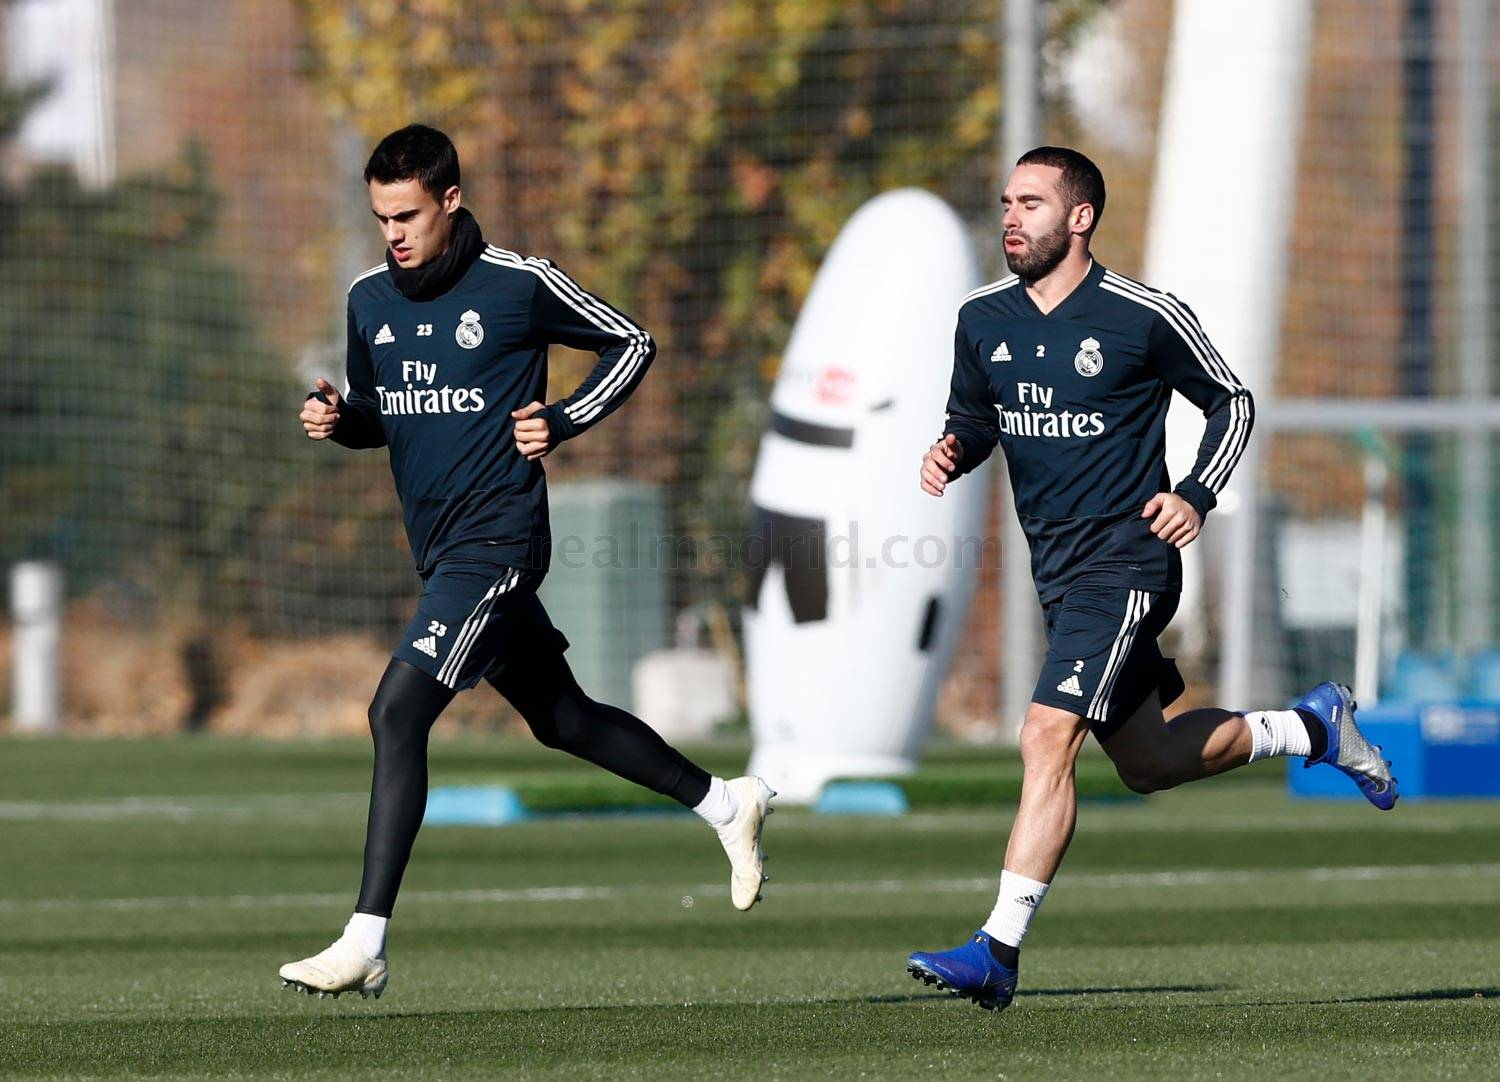 Real Madrid - Entrenamiento del Real Madrid - 29-11-2018